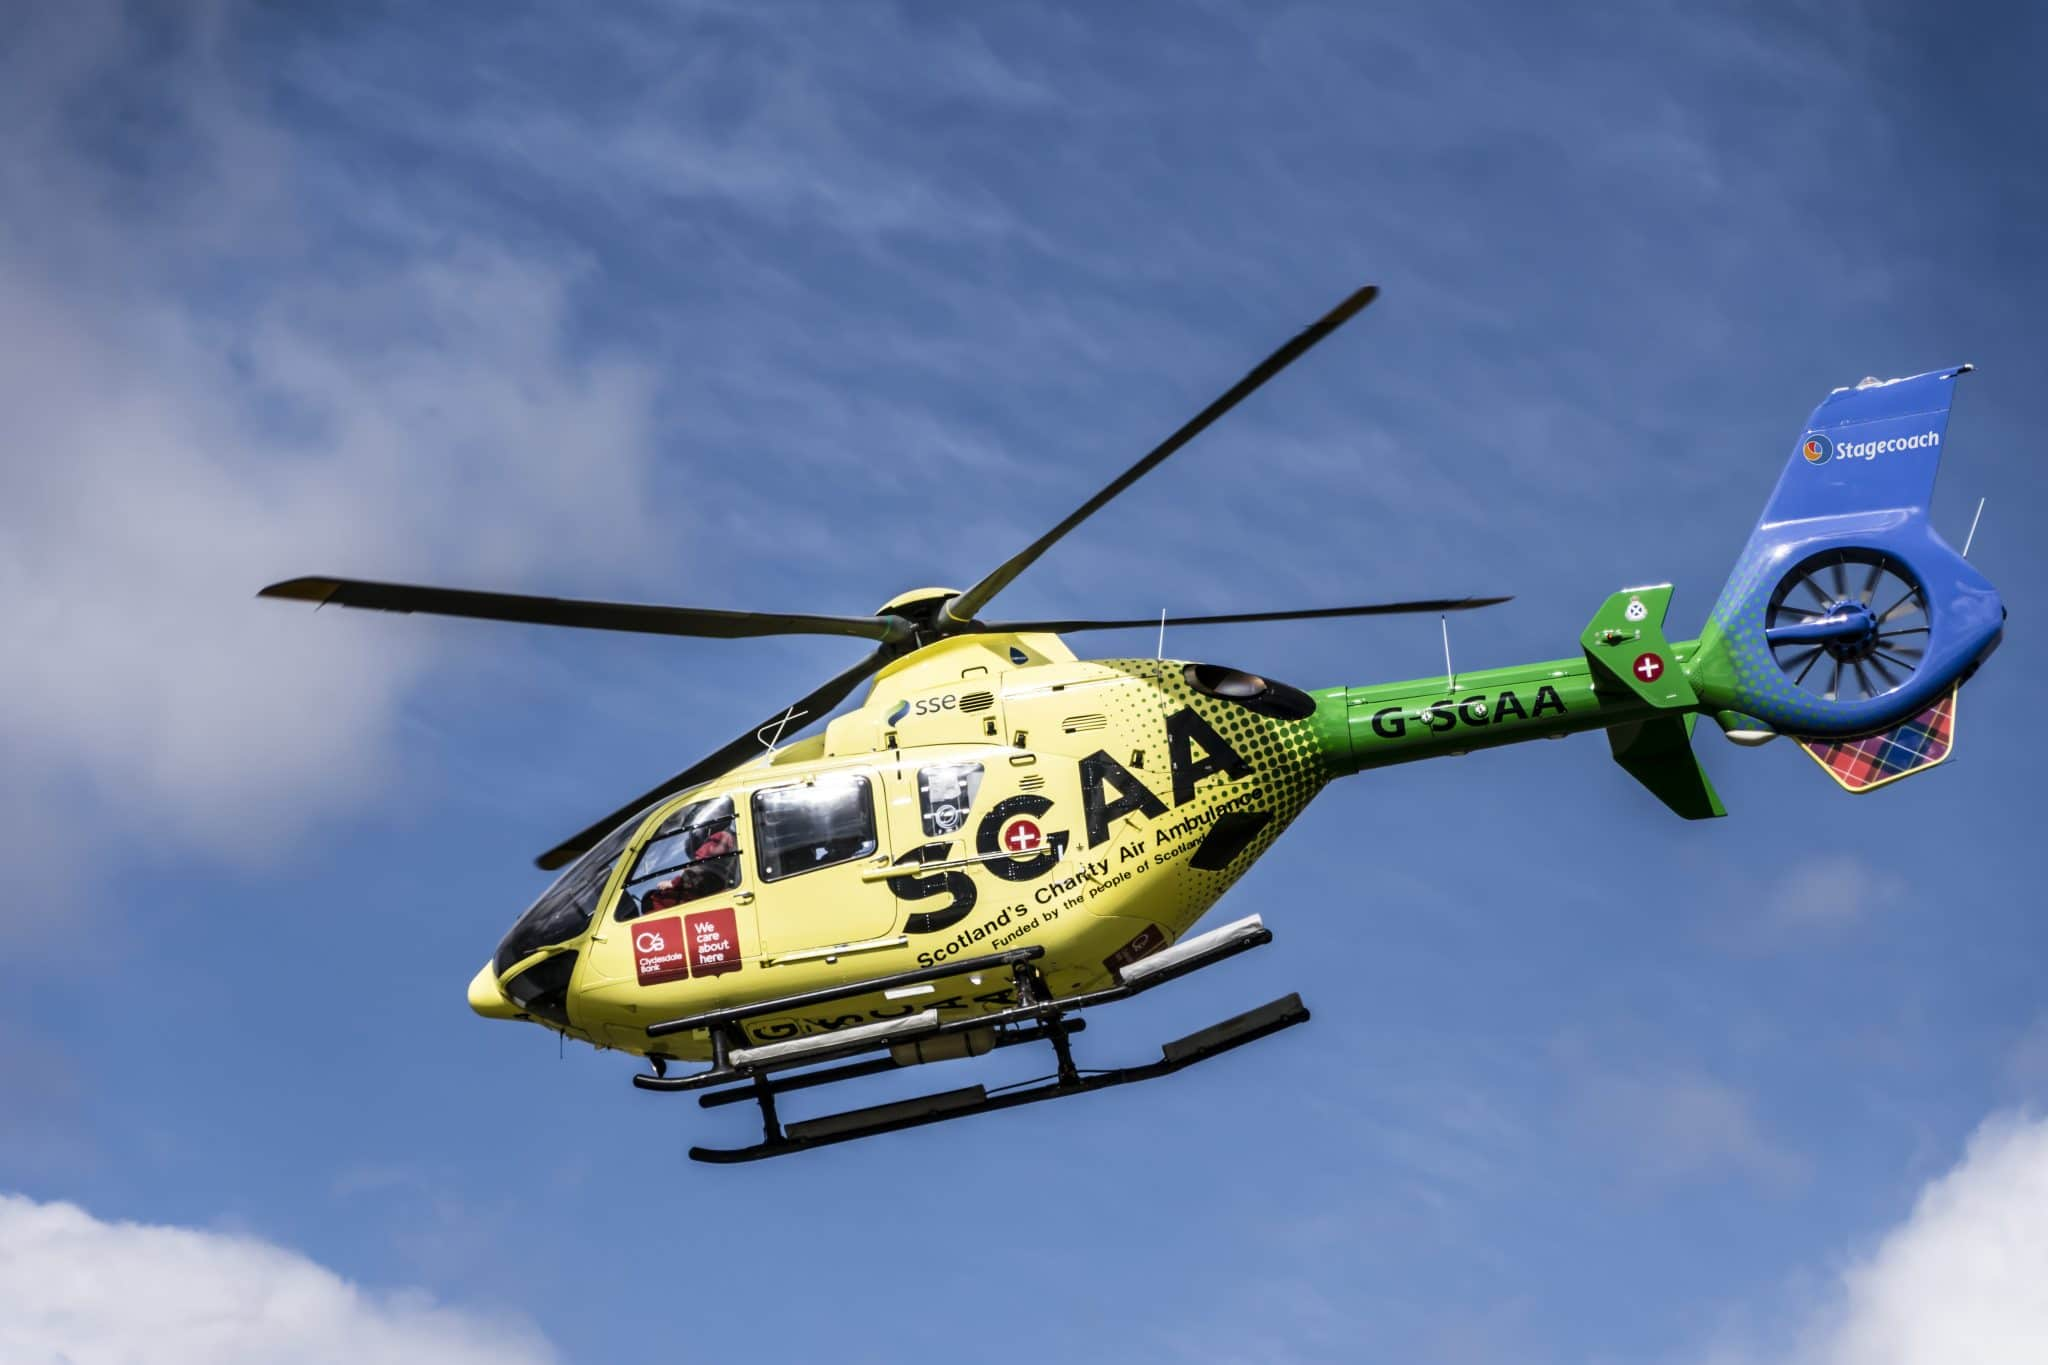 'Uplifting' Stories Sought by Scotland's Charity Air Ambulance